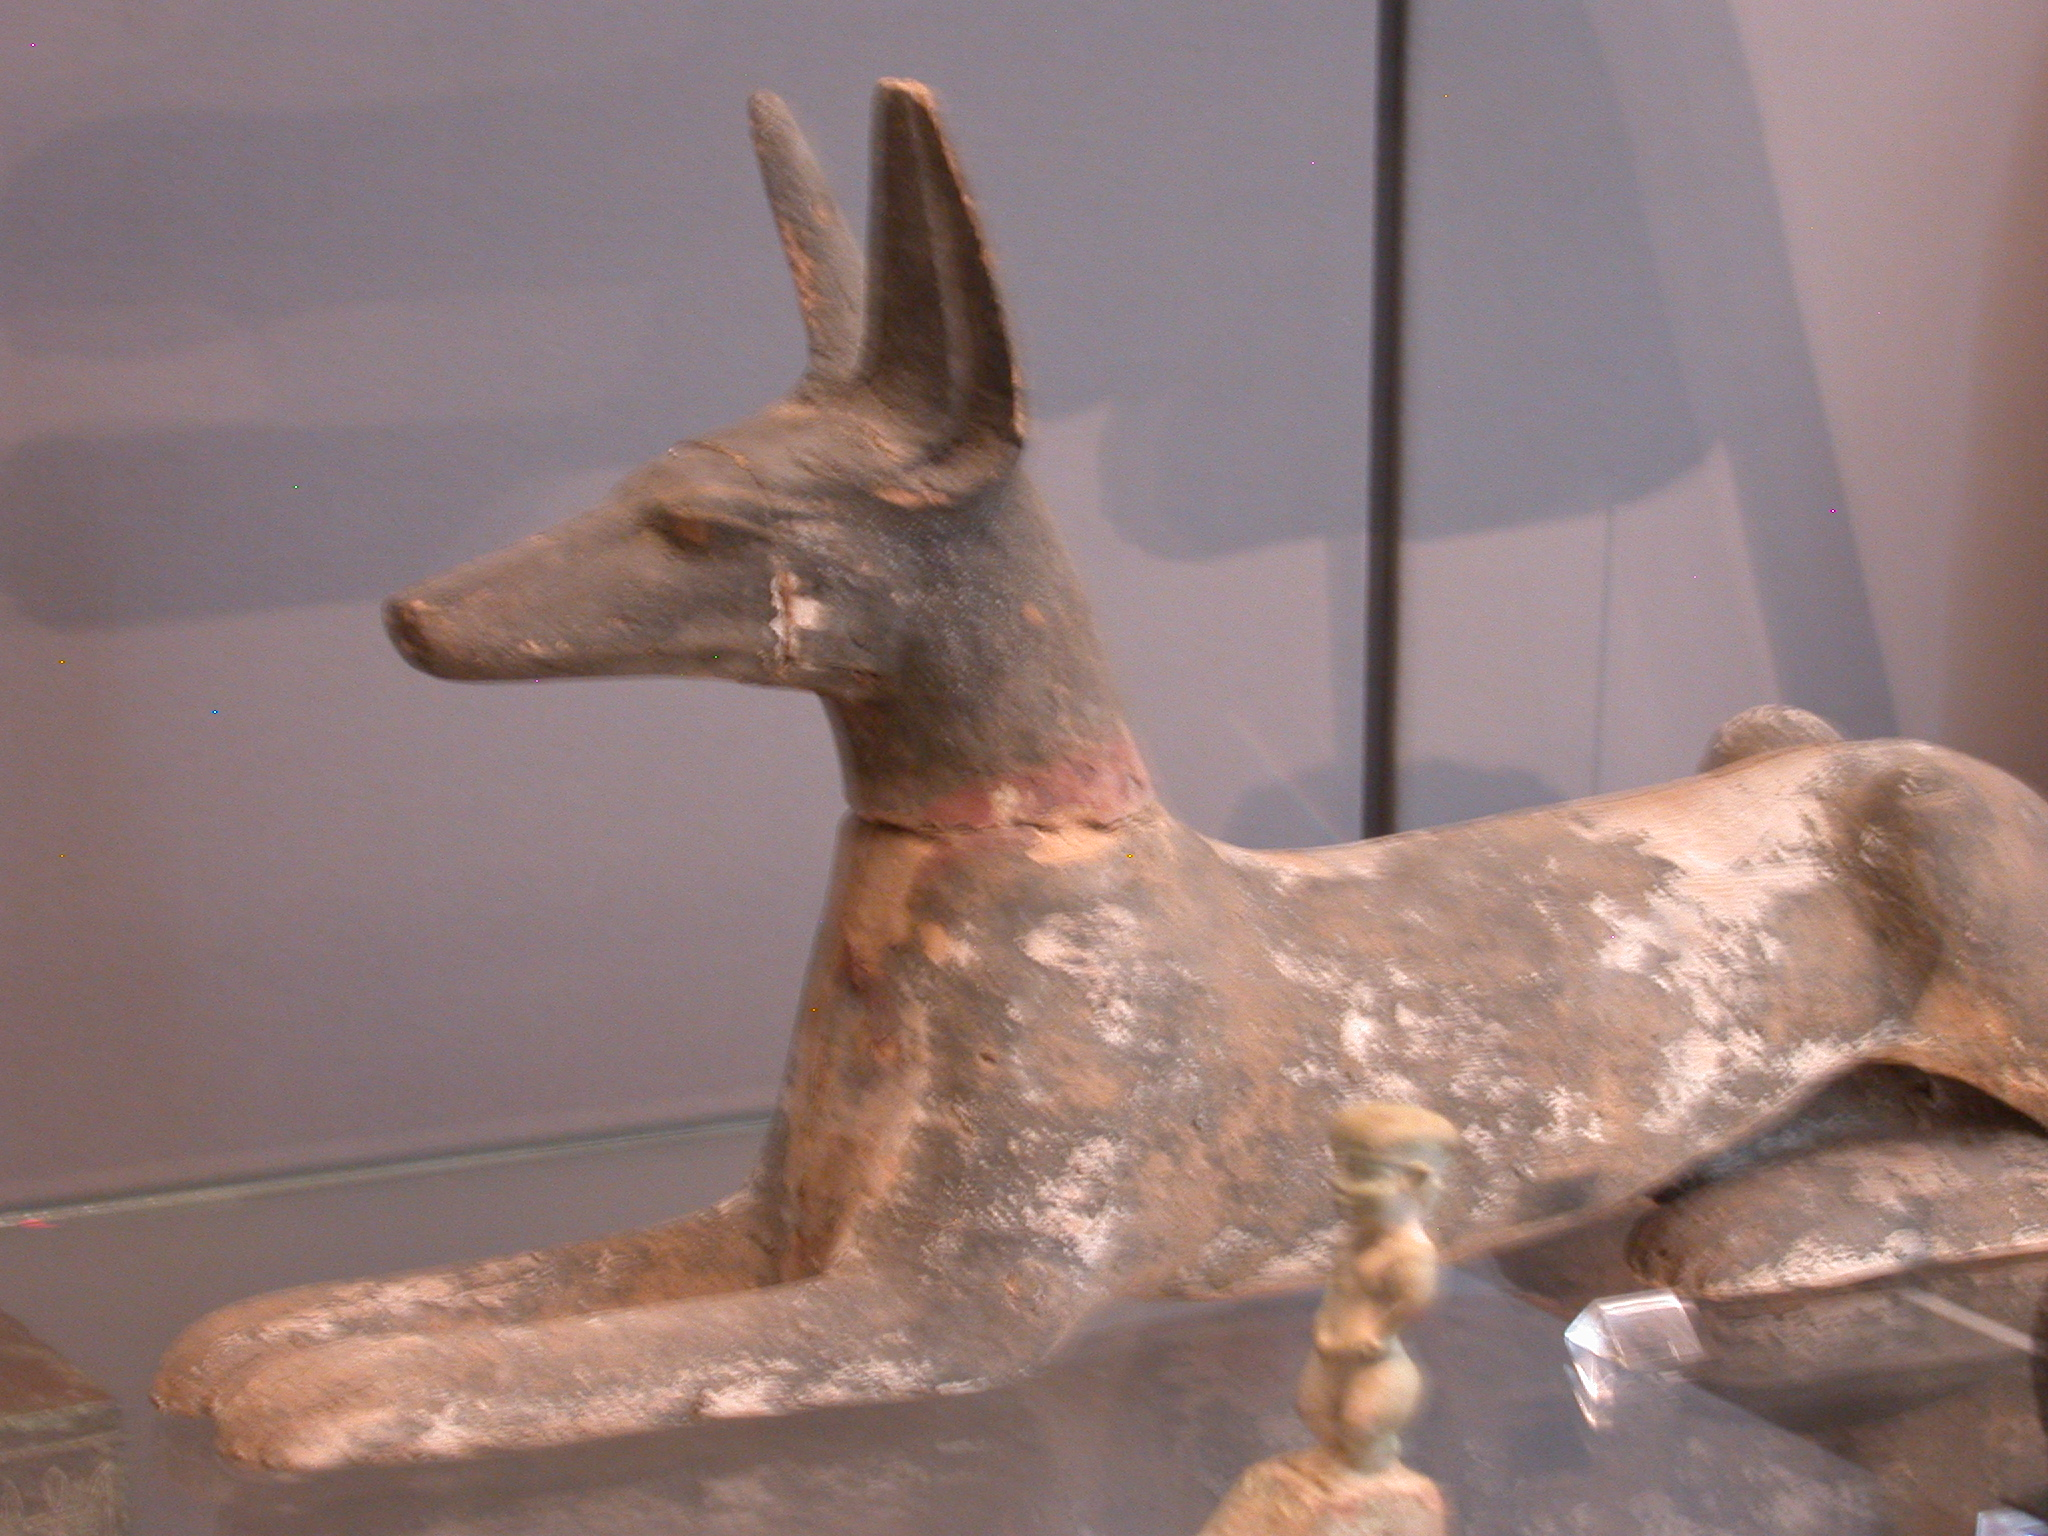 Figure of Anubis as Jackal, Painted Wood, Third Intermediate Period, 1070-714 BCE, Egypt, in Fitzwilliam Museum, Cambridge, England